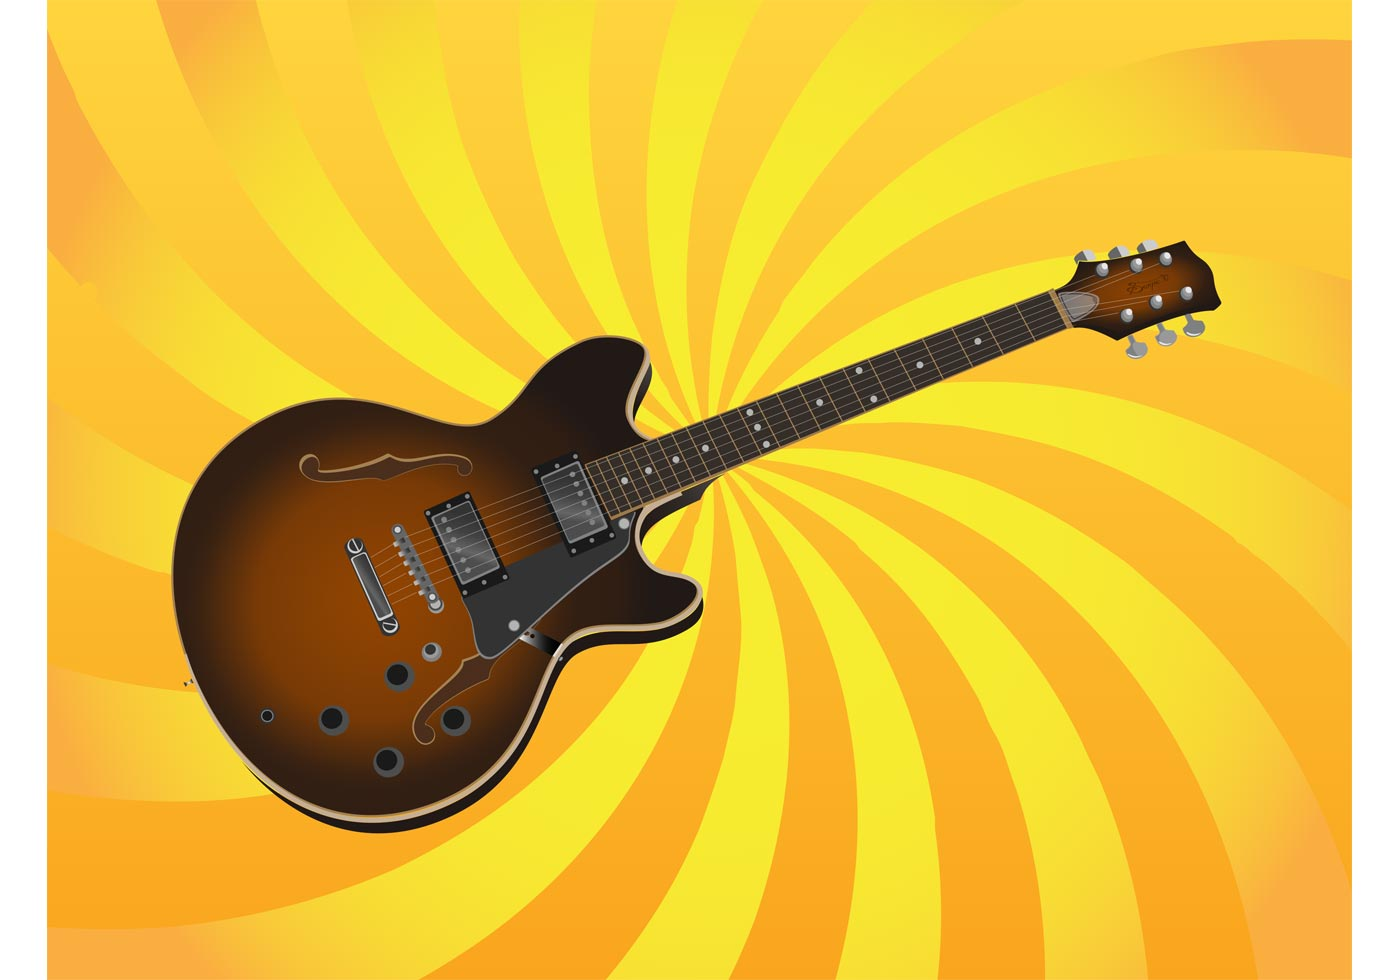 Guitar Illustration Download Free Vector Art Stock